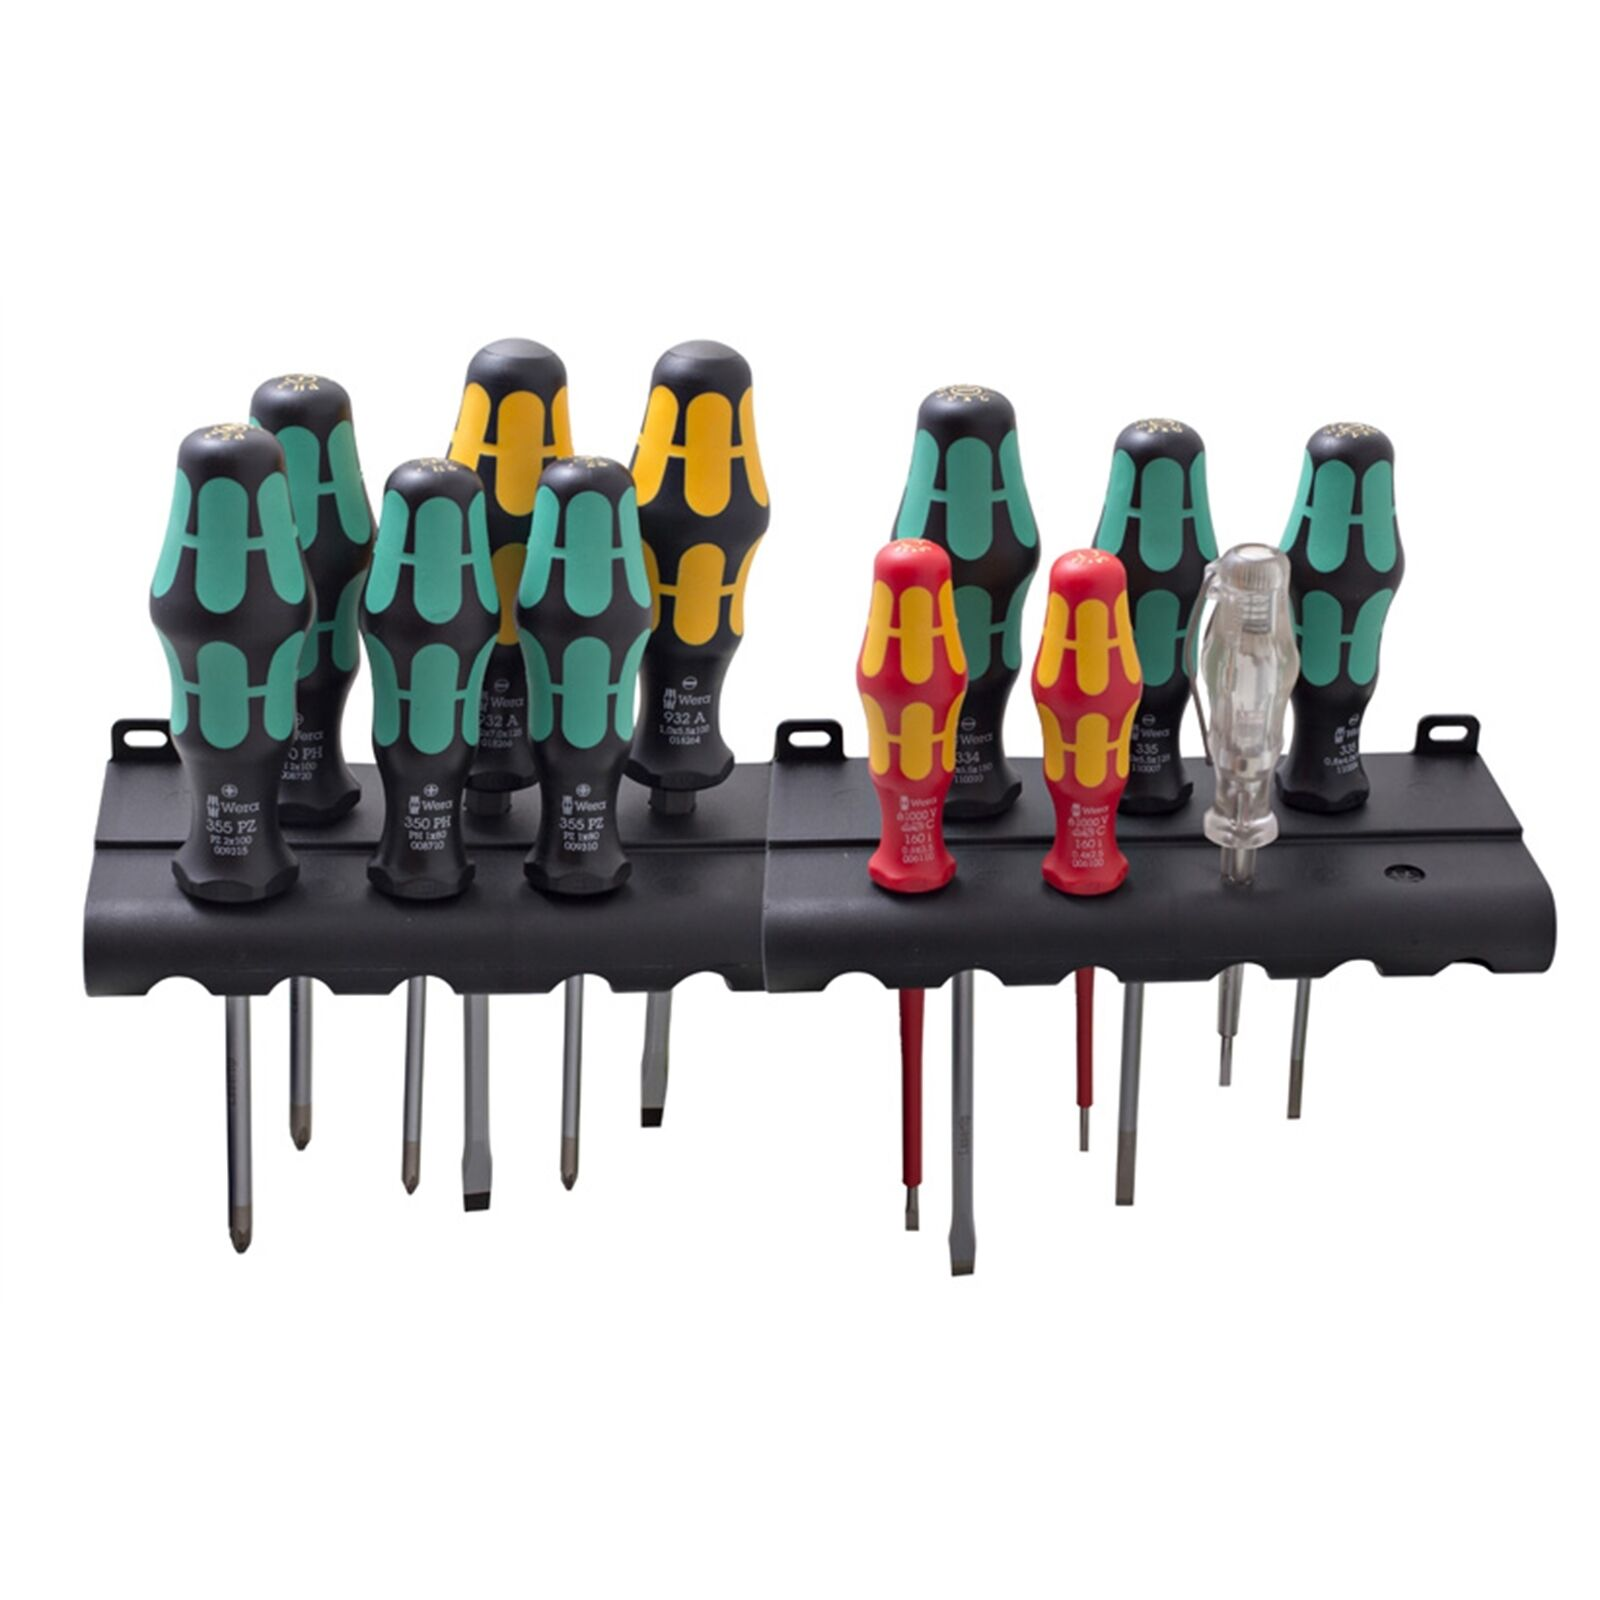 Wera Kraftform XXL SCREWDRIVER SET WERA051010 12Pieces, Laser Tip German Brand